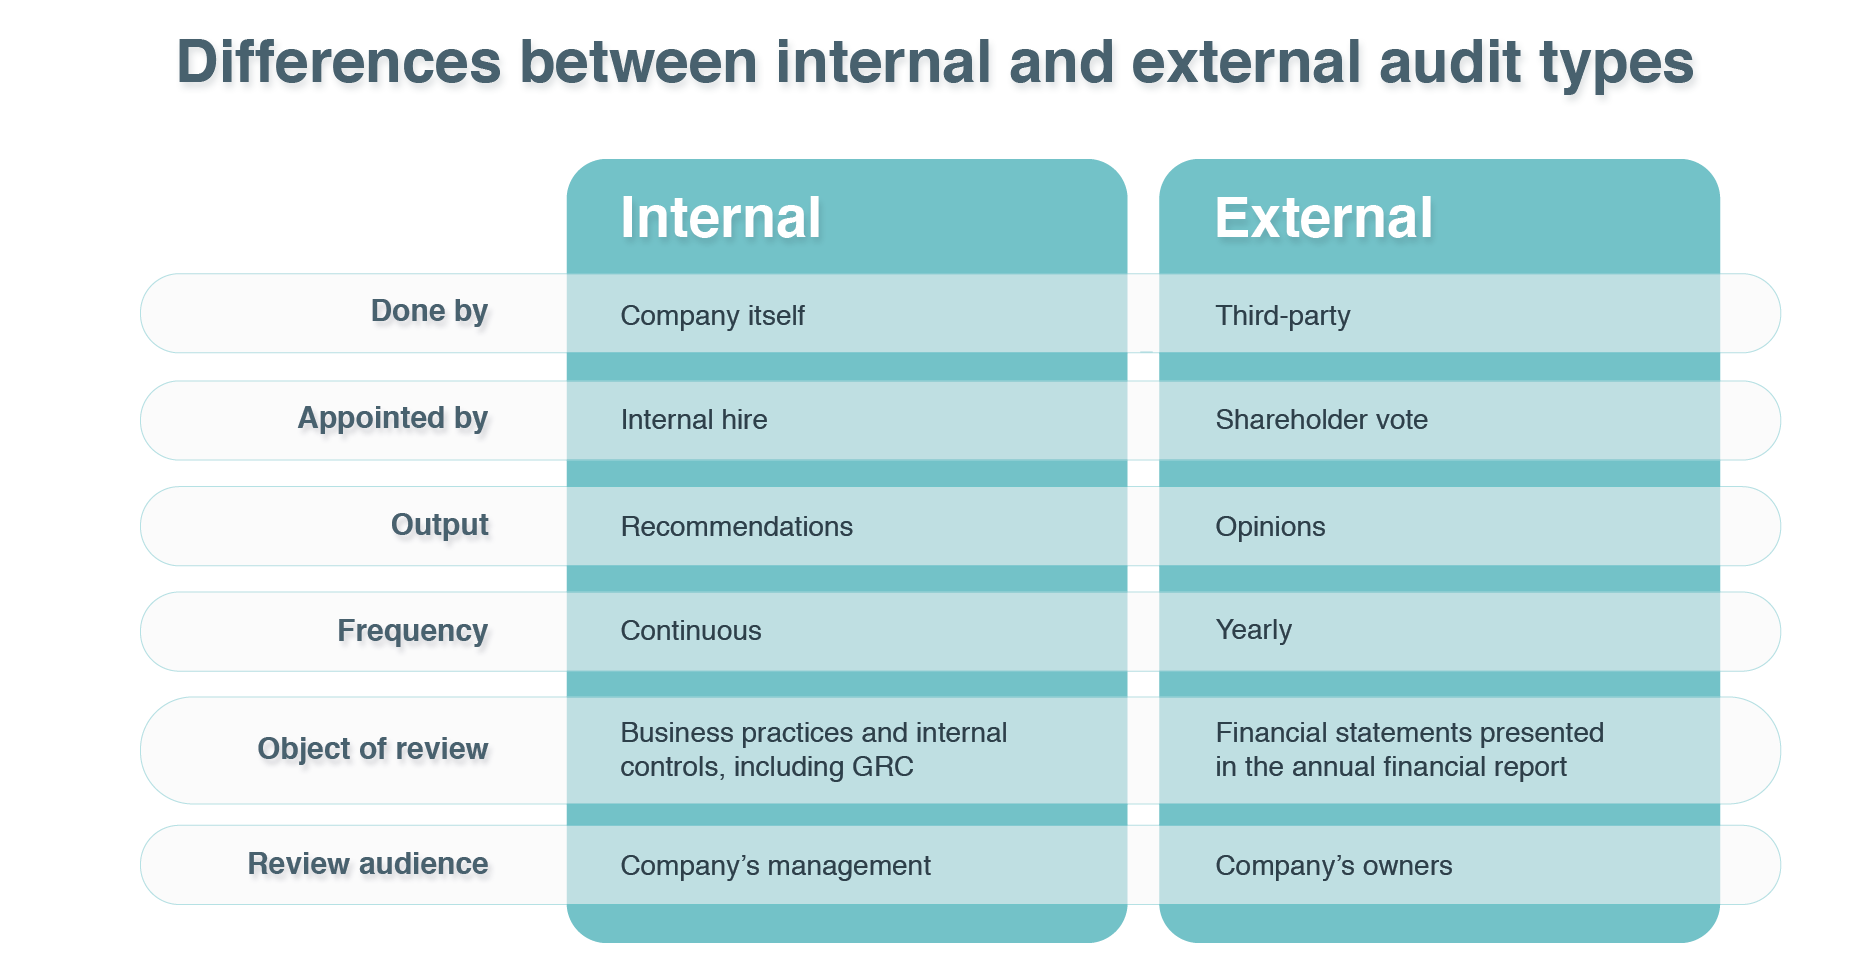 Governance, Risk Management, and Compliance (GRC): Influences on Internal and External Audits